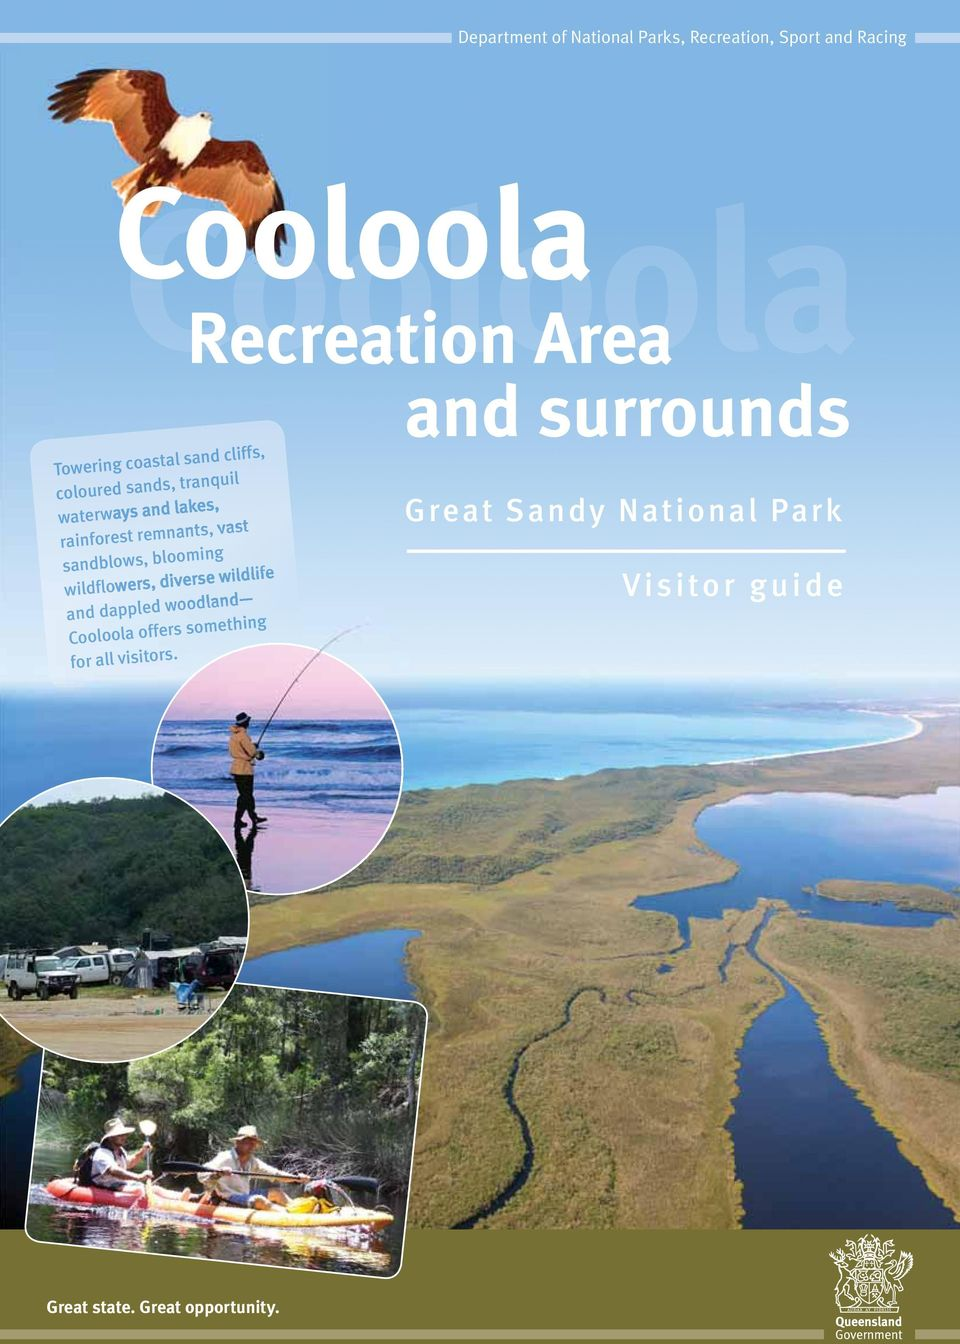 sandblows, blooming wildflowers, diverse wildlife and dappled woodland Cooloola offers something